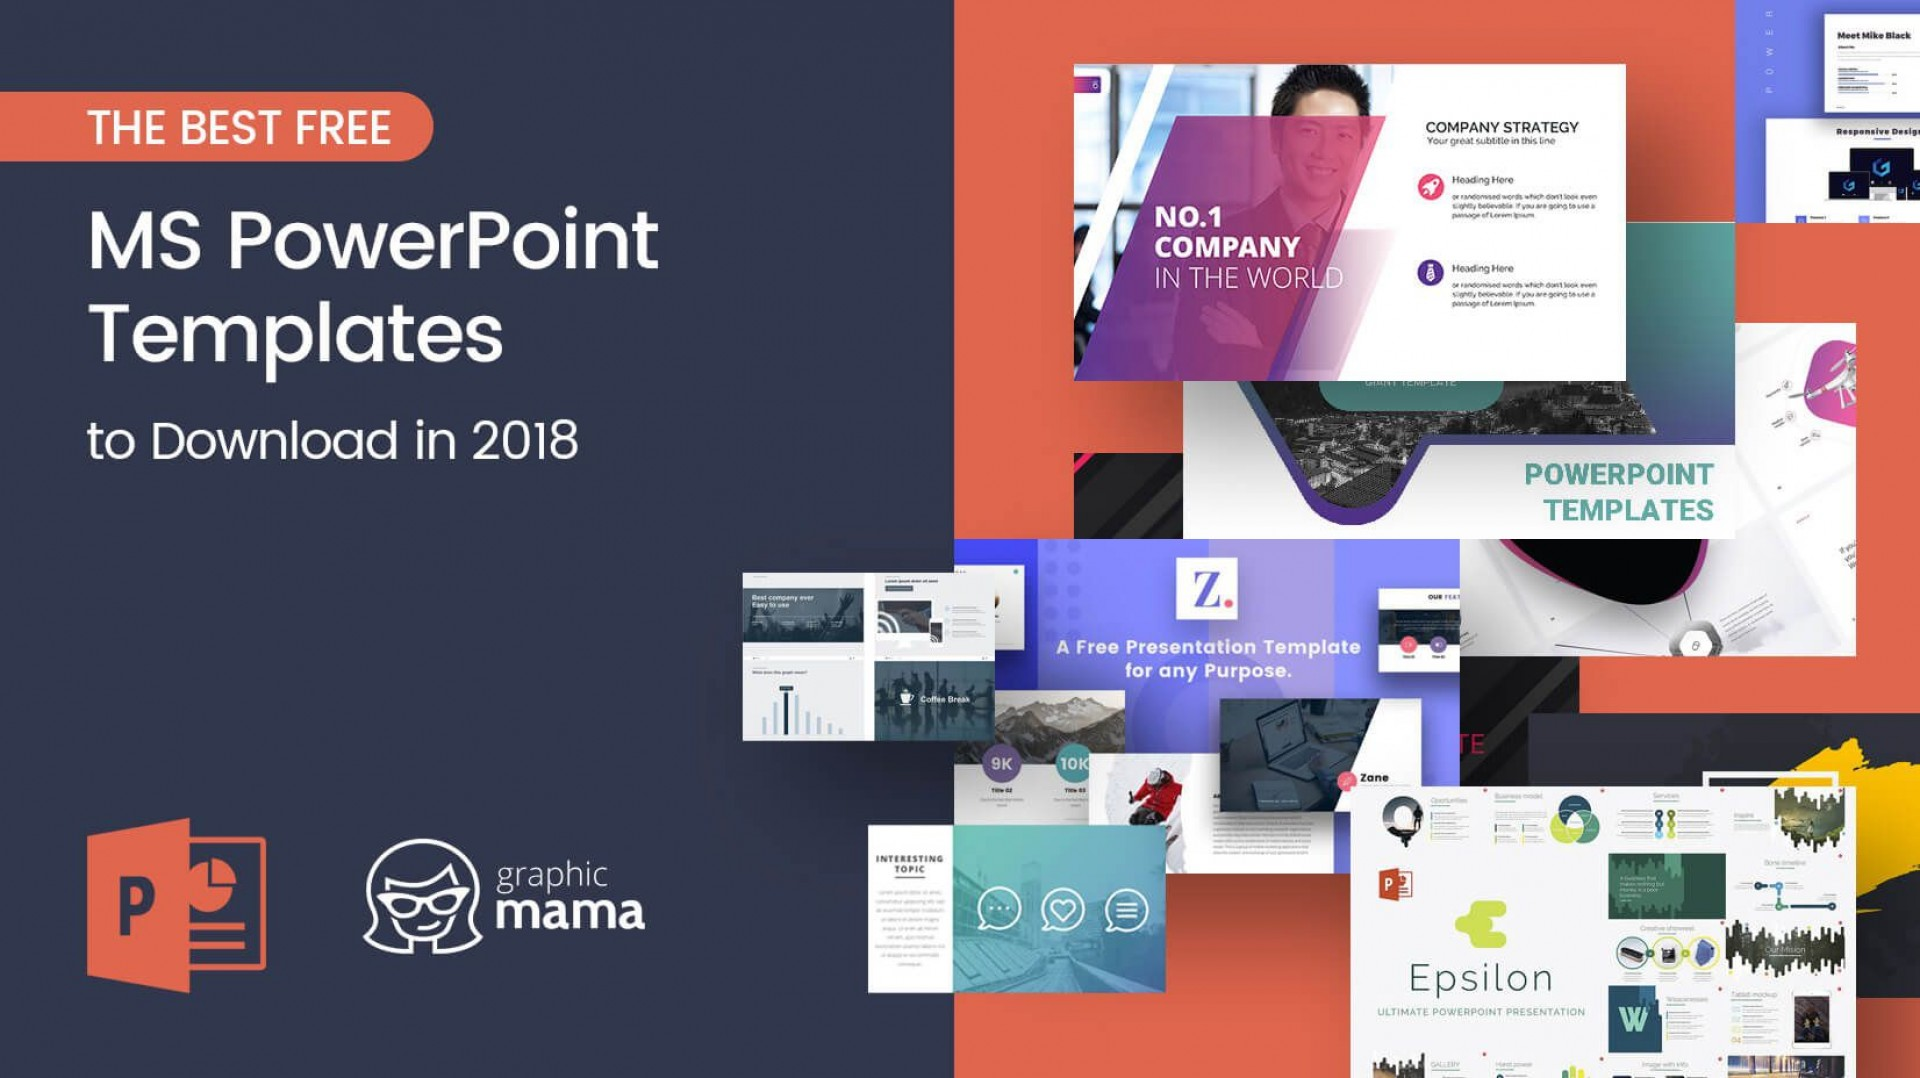 008 Exceptional Professional Ppt Template Free Download High Resolution  Microsoft 2017 Powerpoint Presentation 20191920